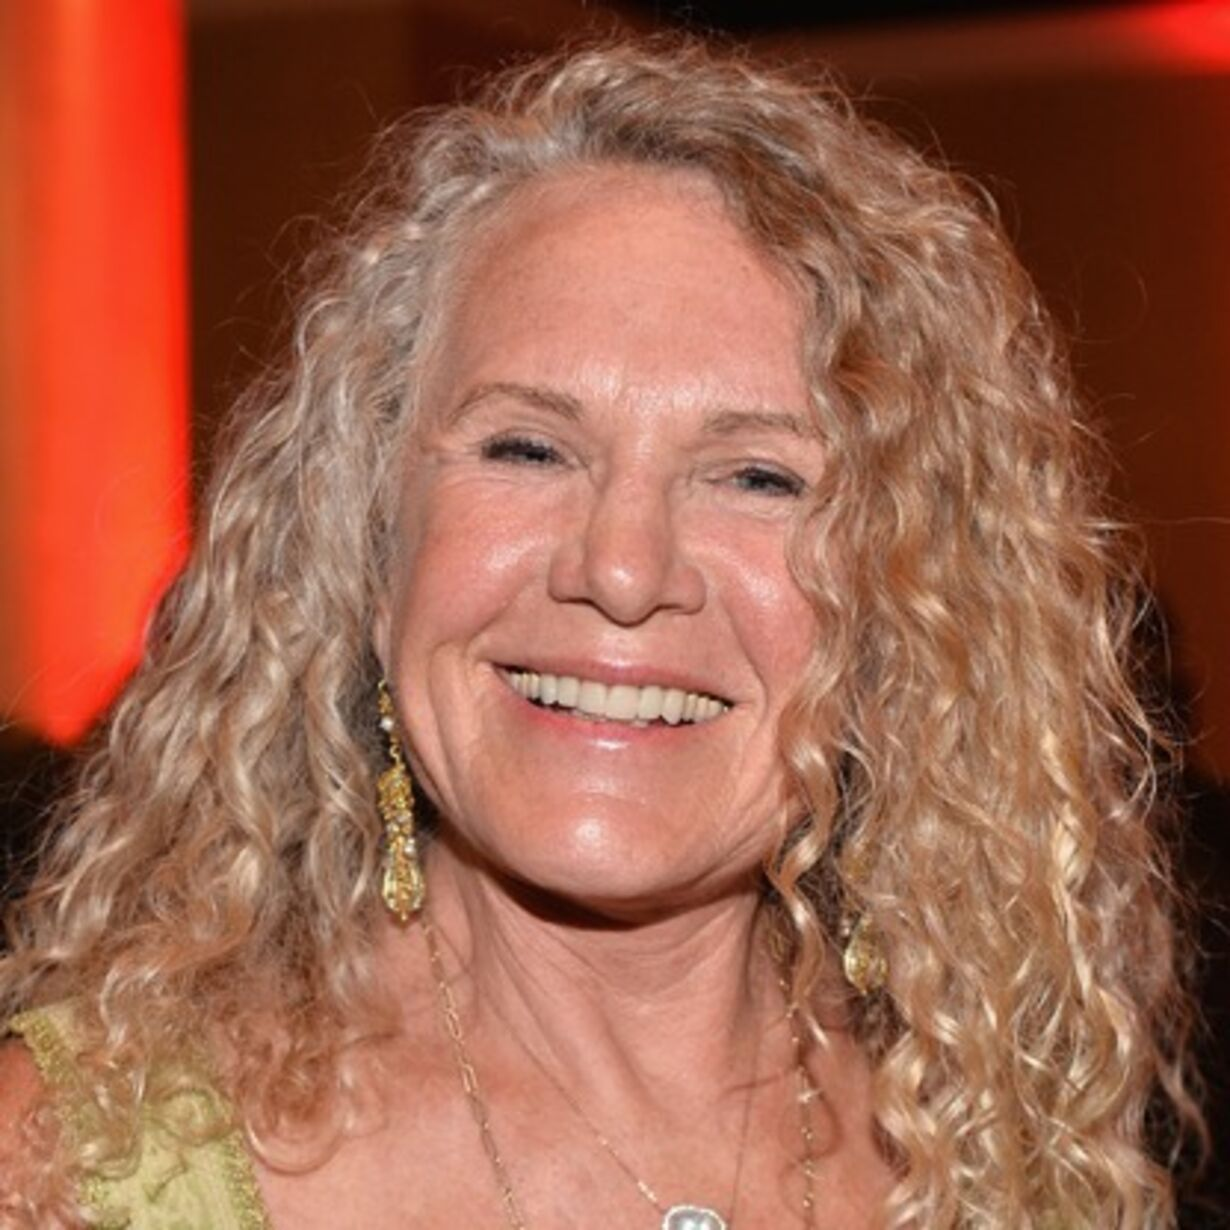 pix-christy walton